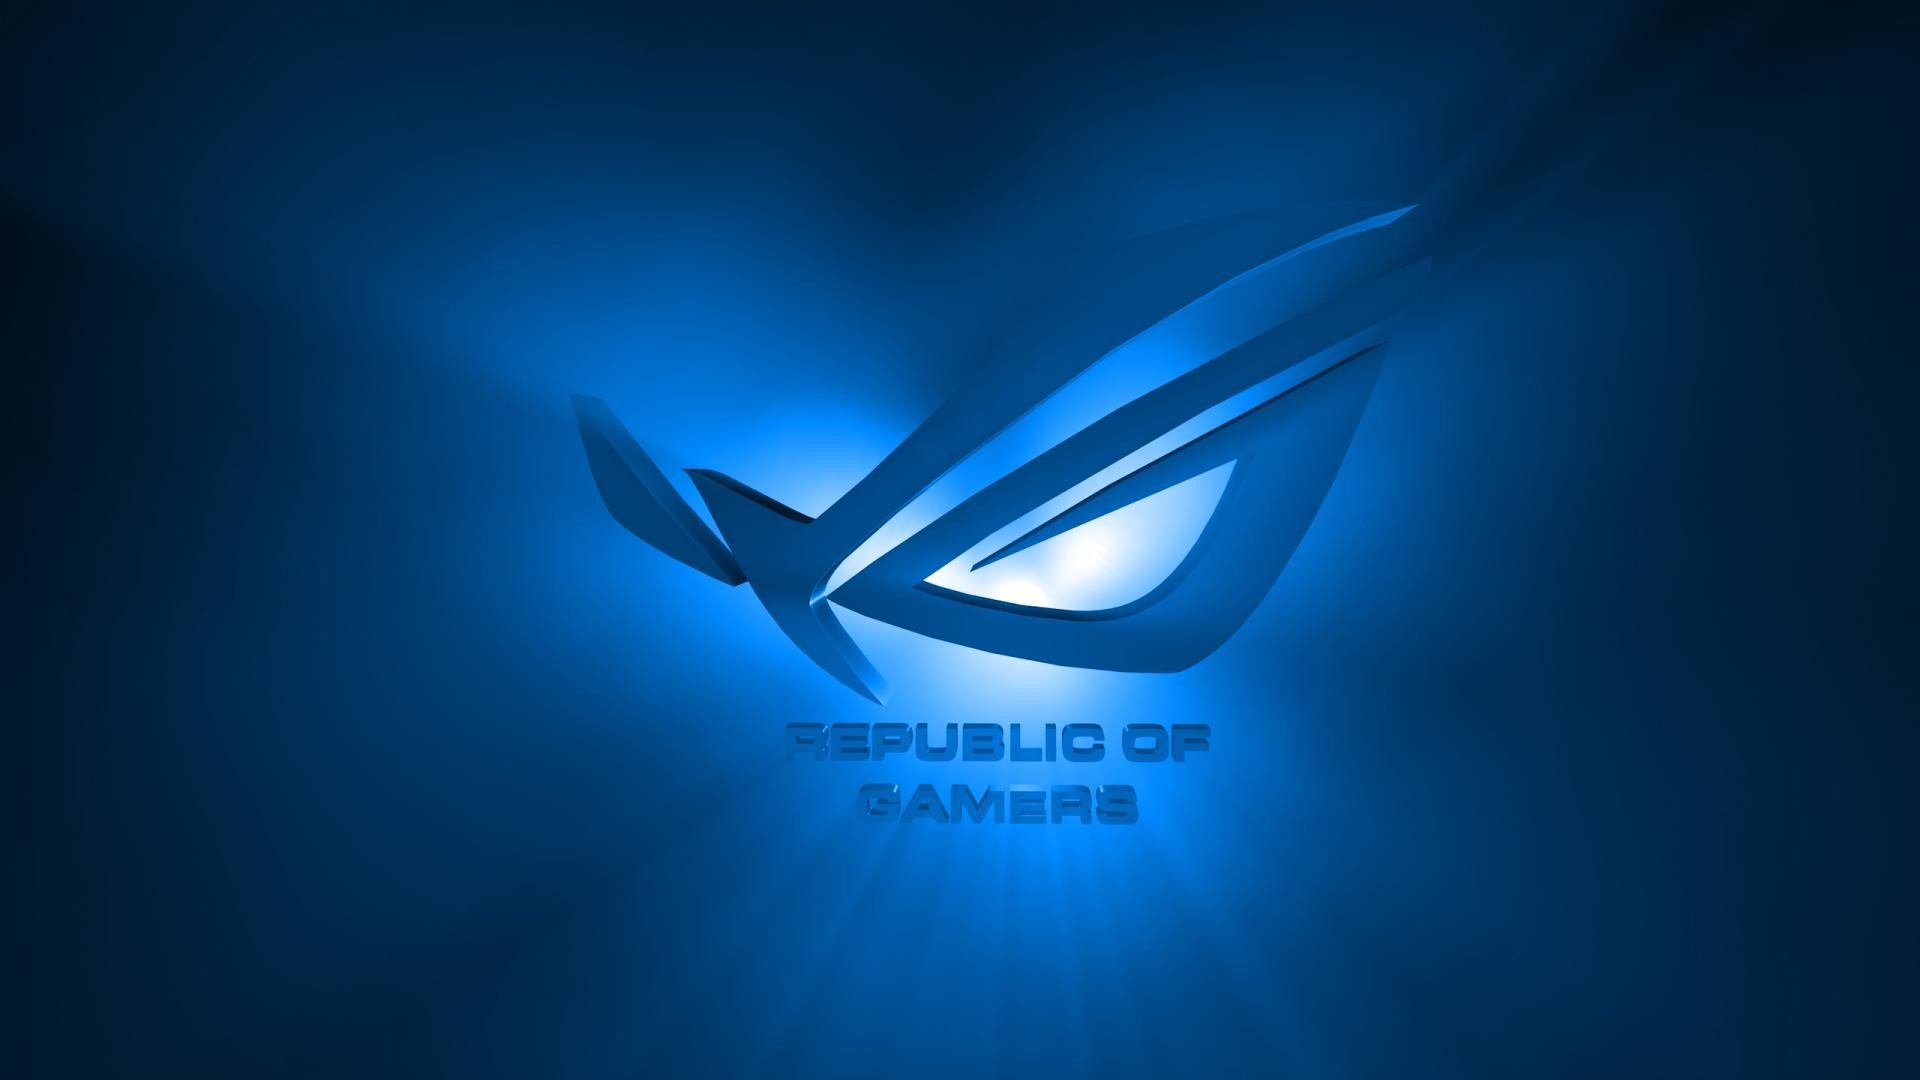 Here I present some of the best and top asus desktop wallpapers collection  for asus users.